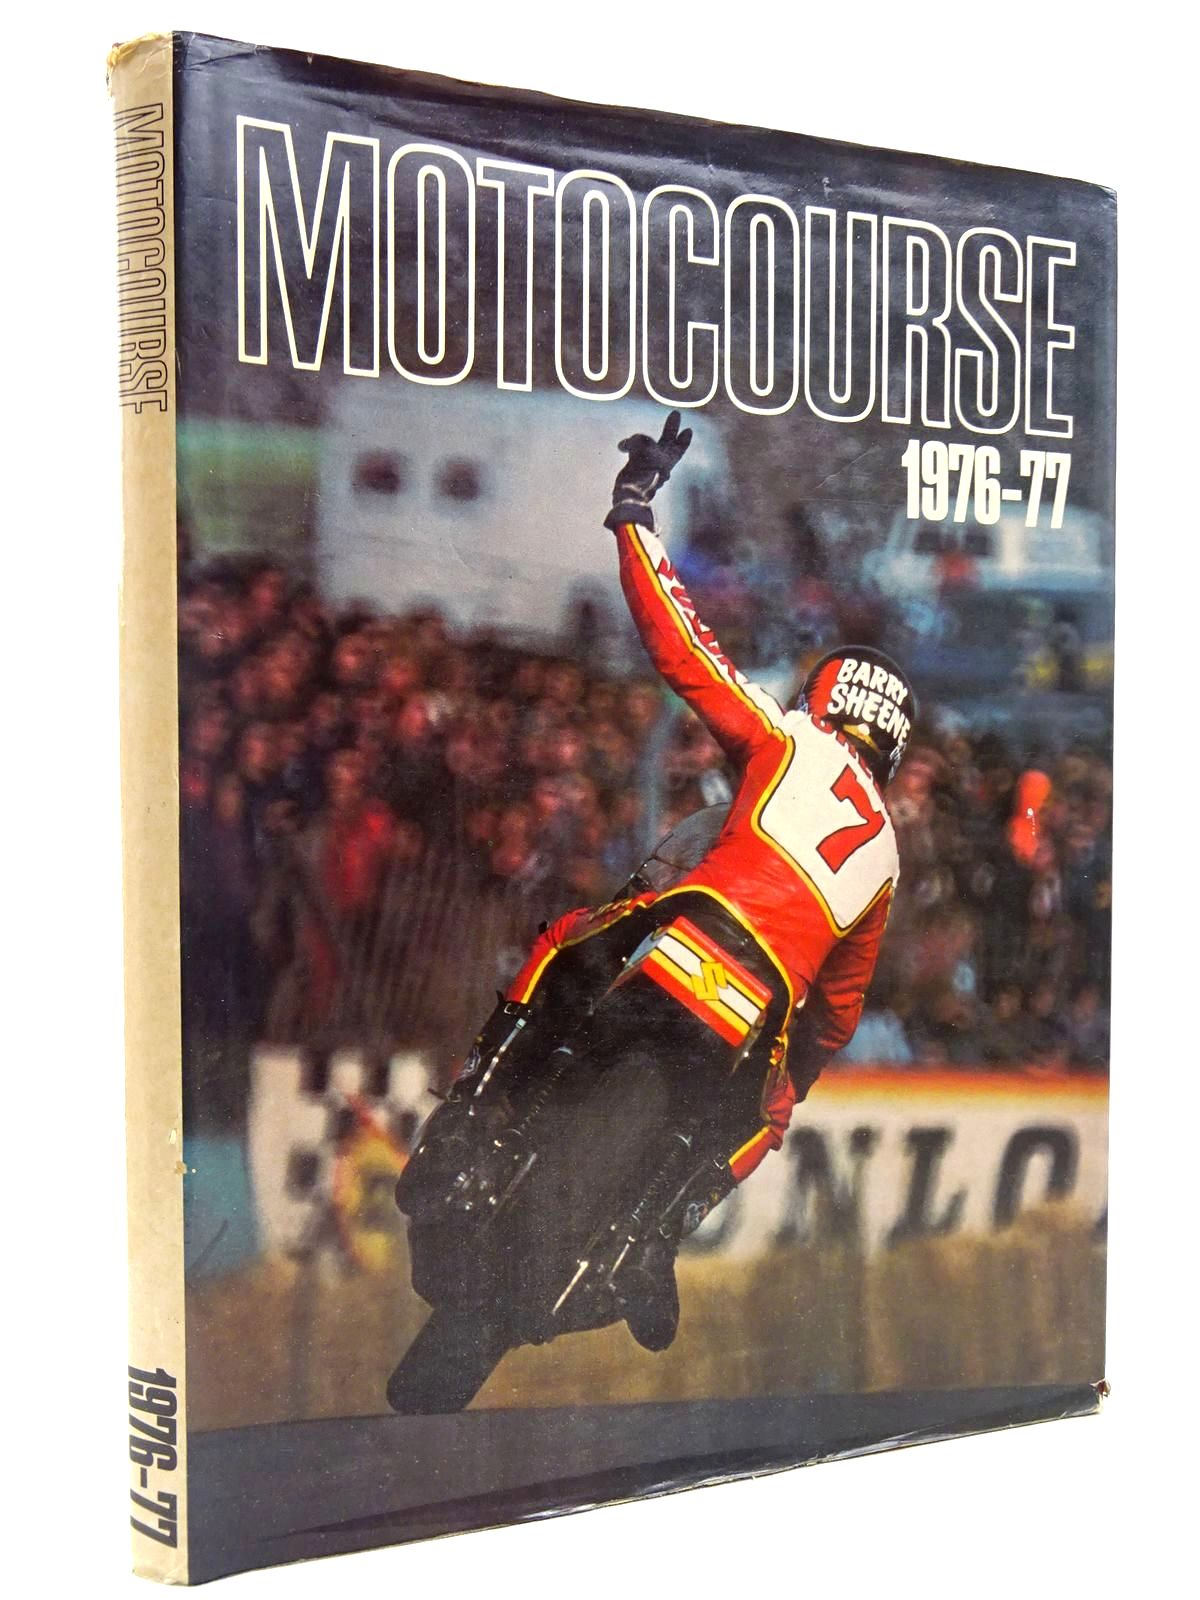 Photo of MOTOCOURSE 1976-77 published by Hazleton Publishing (STOCK CODE: 2128898)  for sale by Stella & Rose's Books